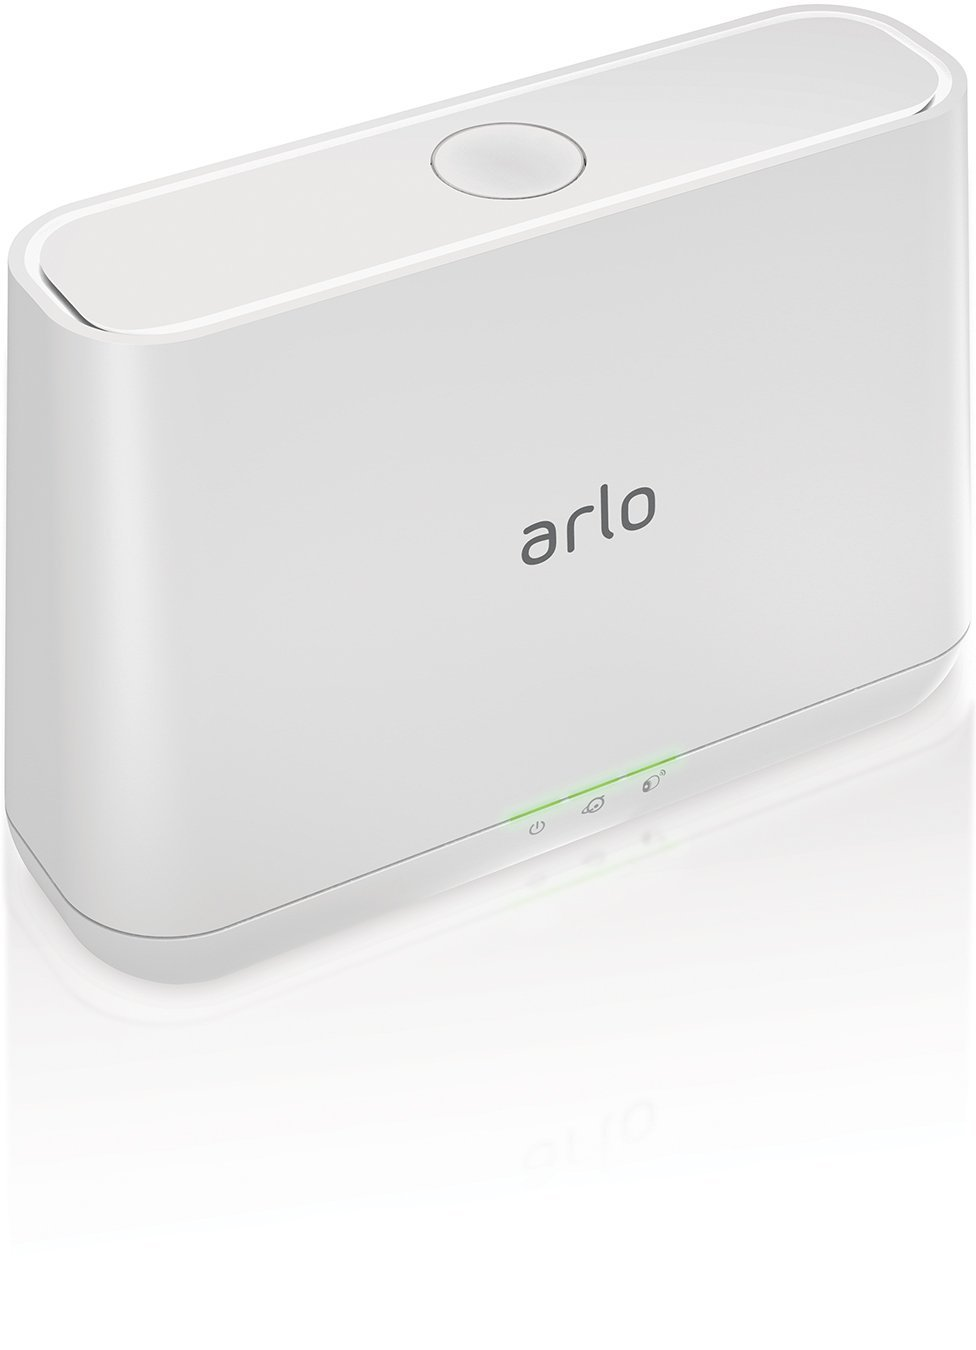 Arlo Base Station for Pro, HD Security Cameras - White